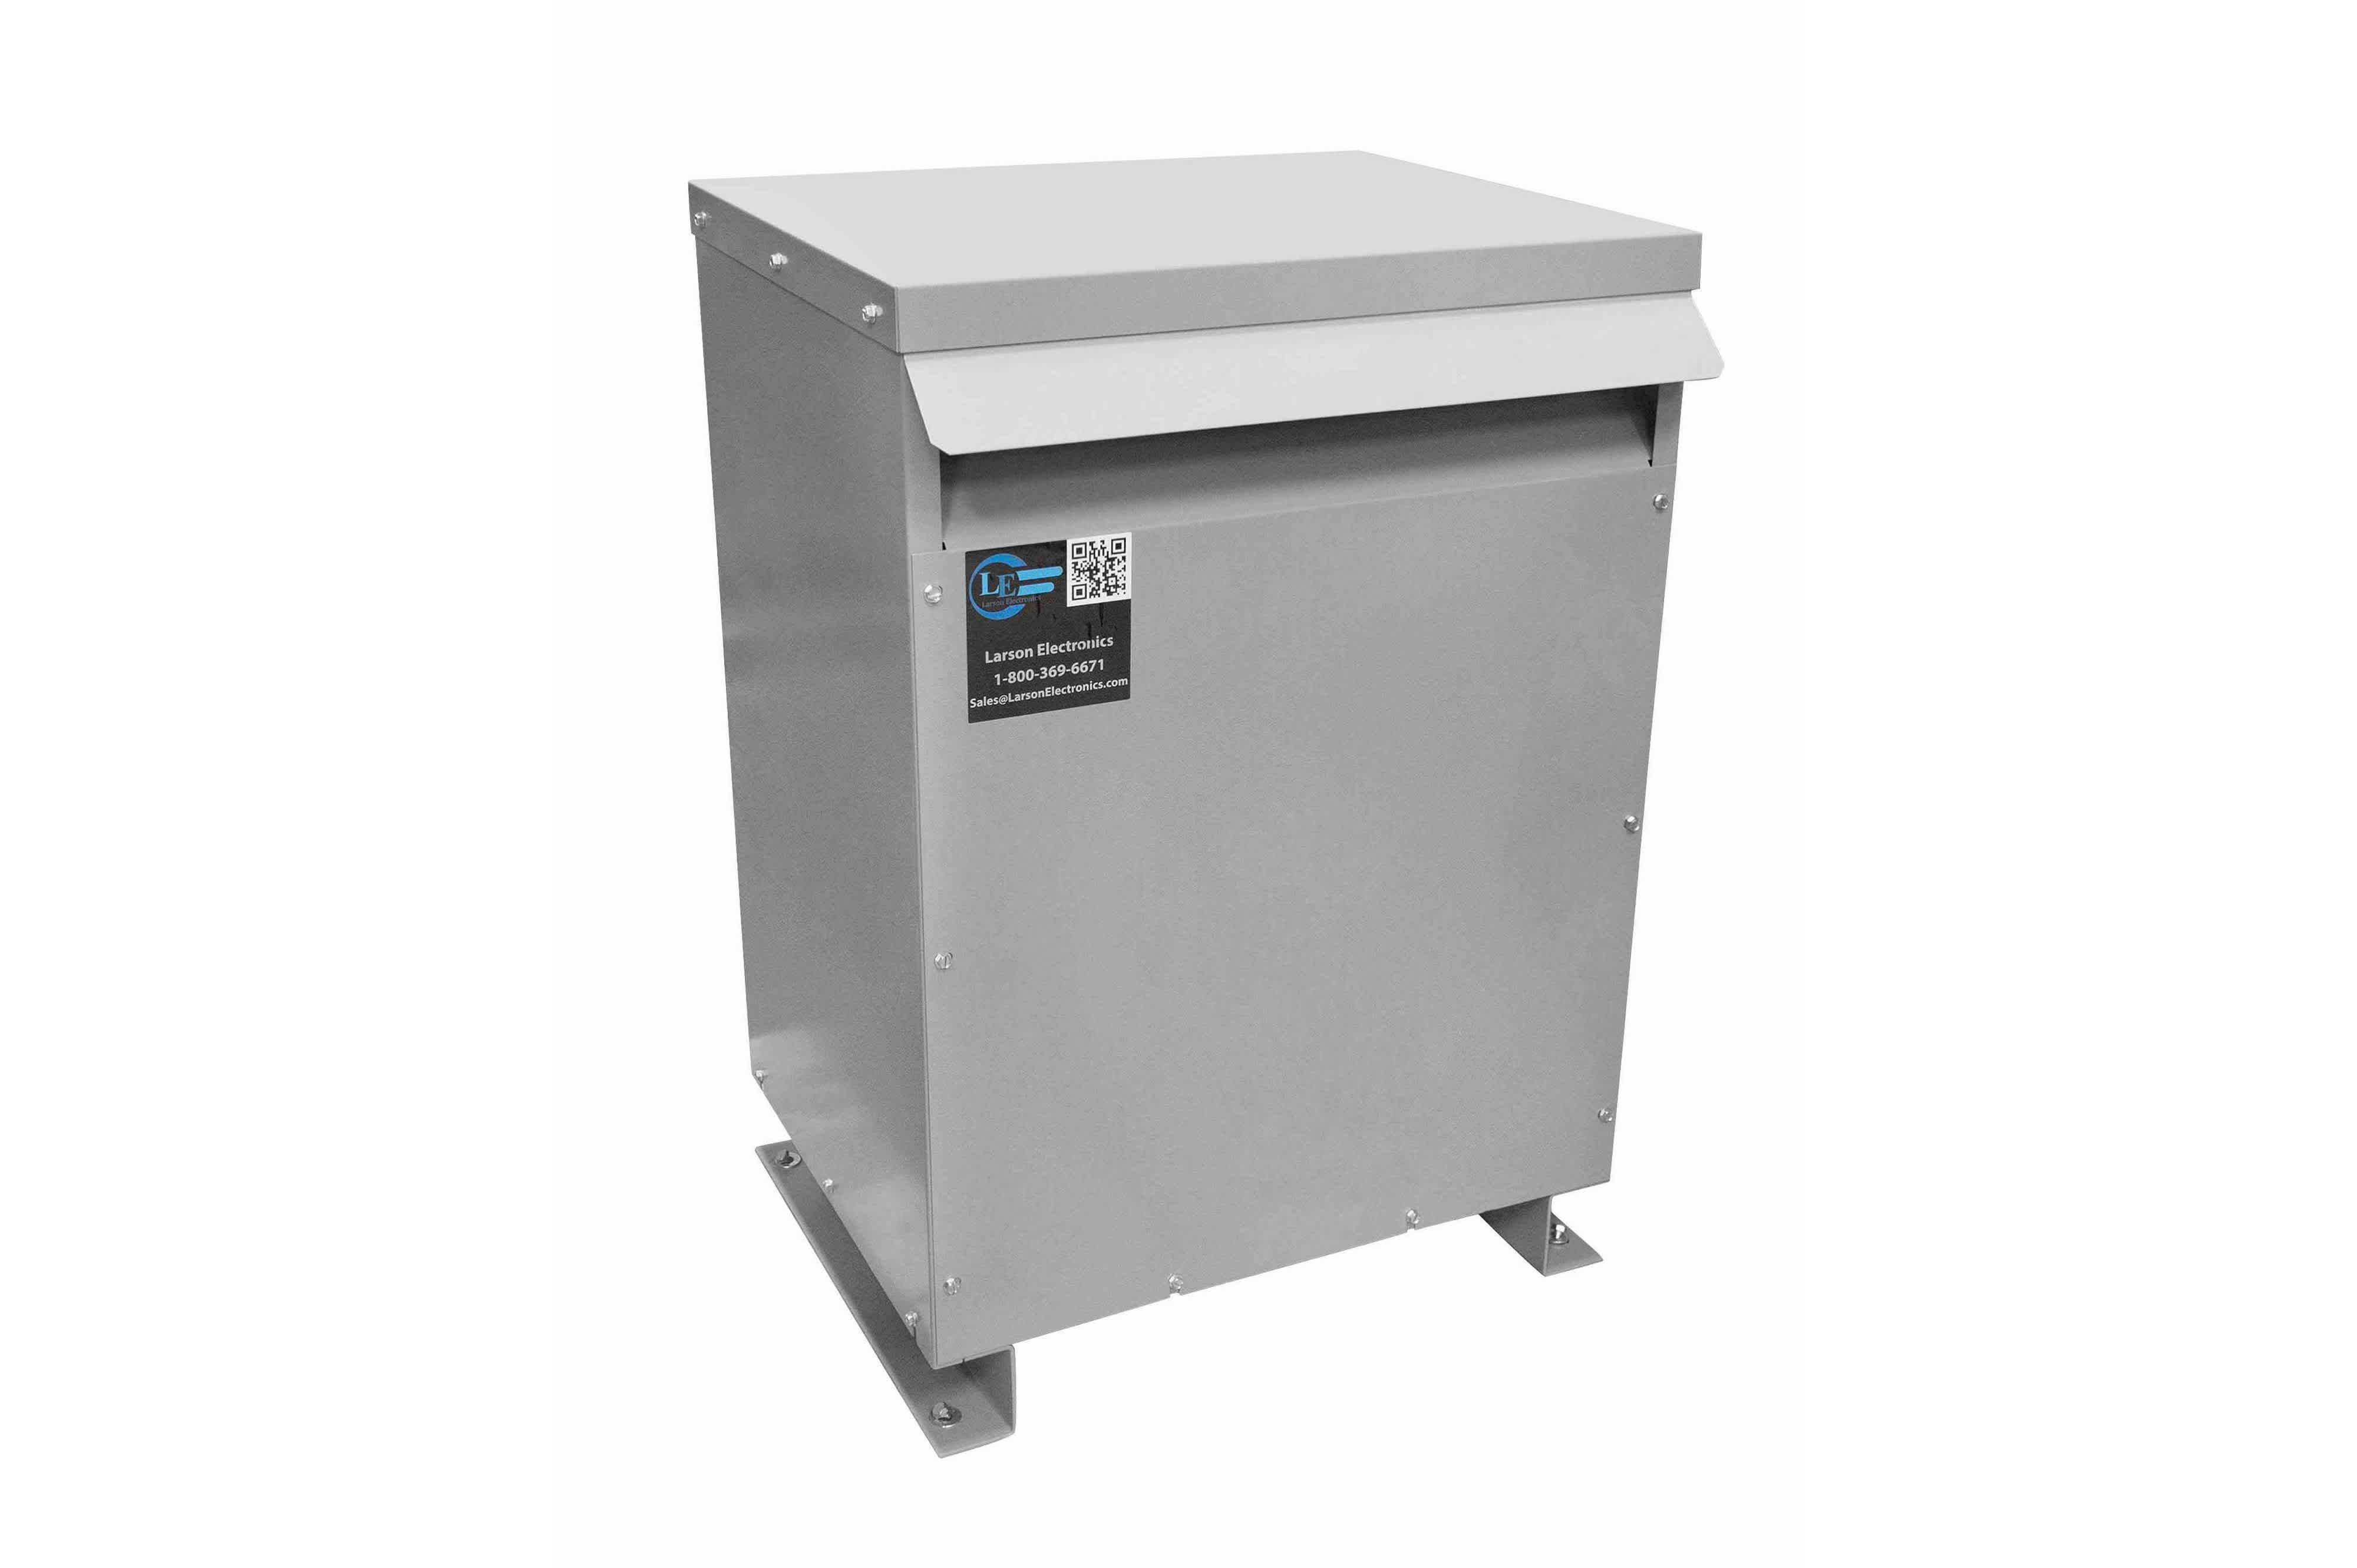 36 kVA 3PH DOE Transformer, 480V Delta Primary, 575Y/332 Wye-N Secondary, N3R, Ventilated, 60 Hz